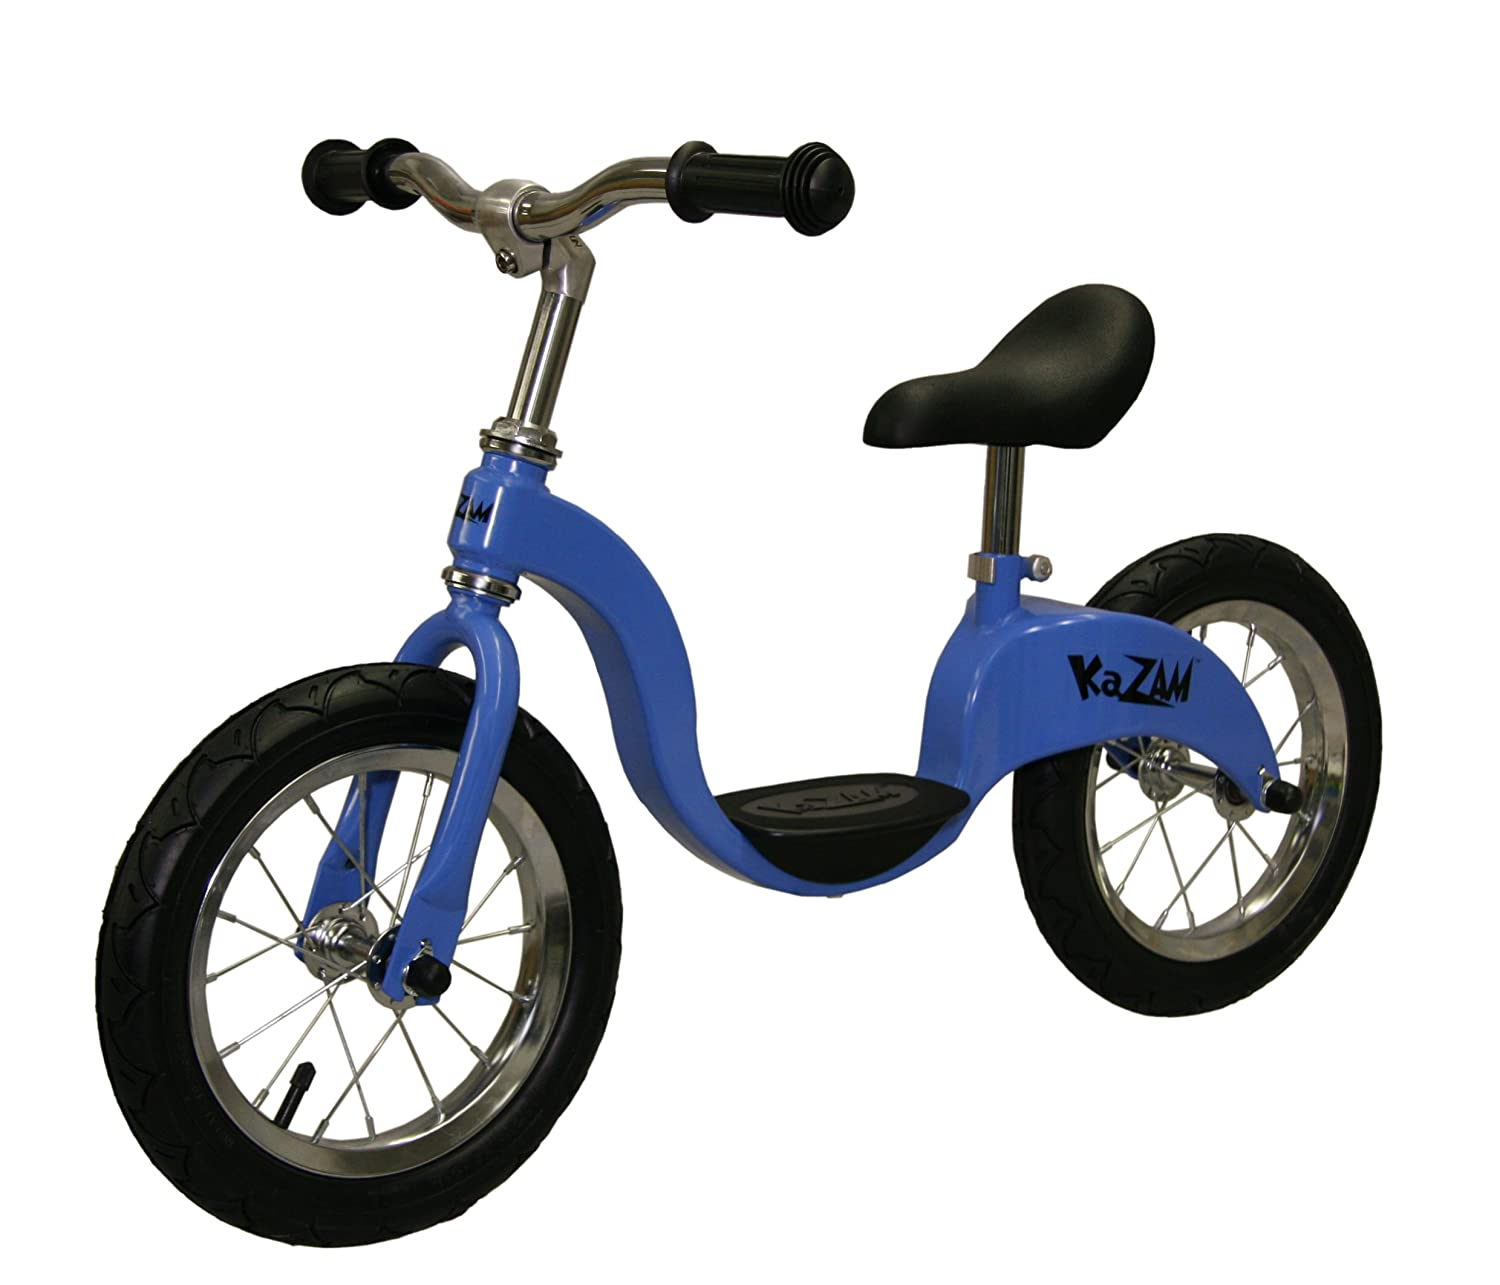 KaZAM Classic Best Balance Bike Reviews